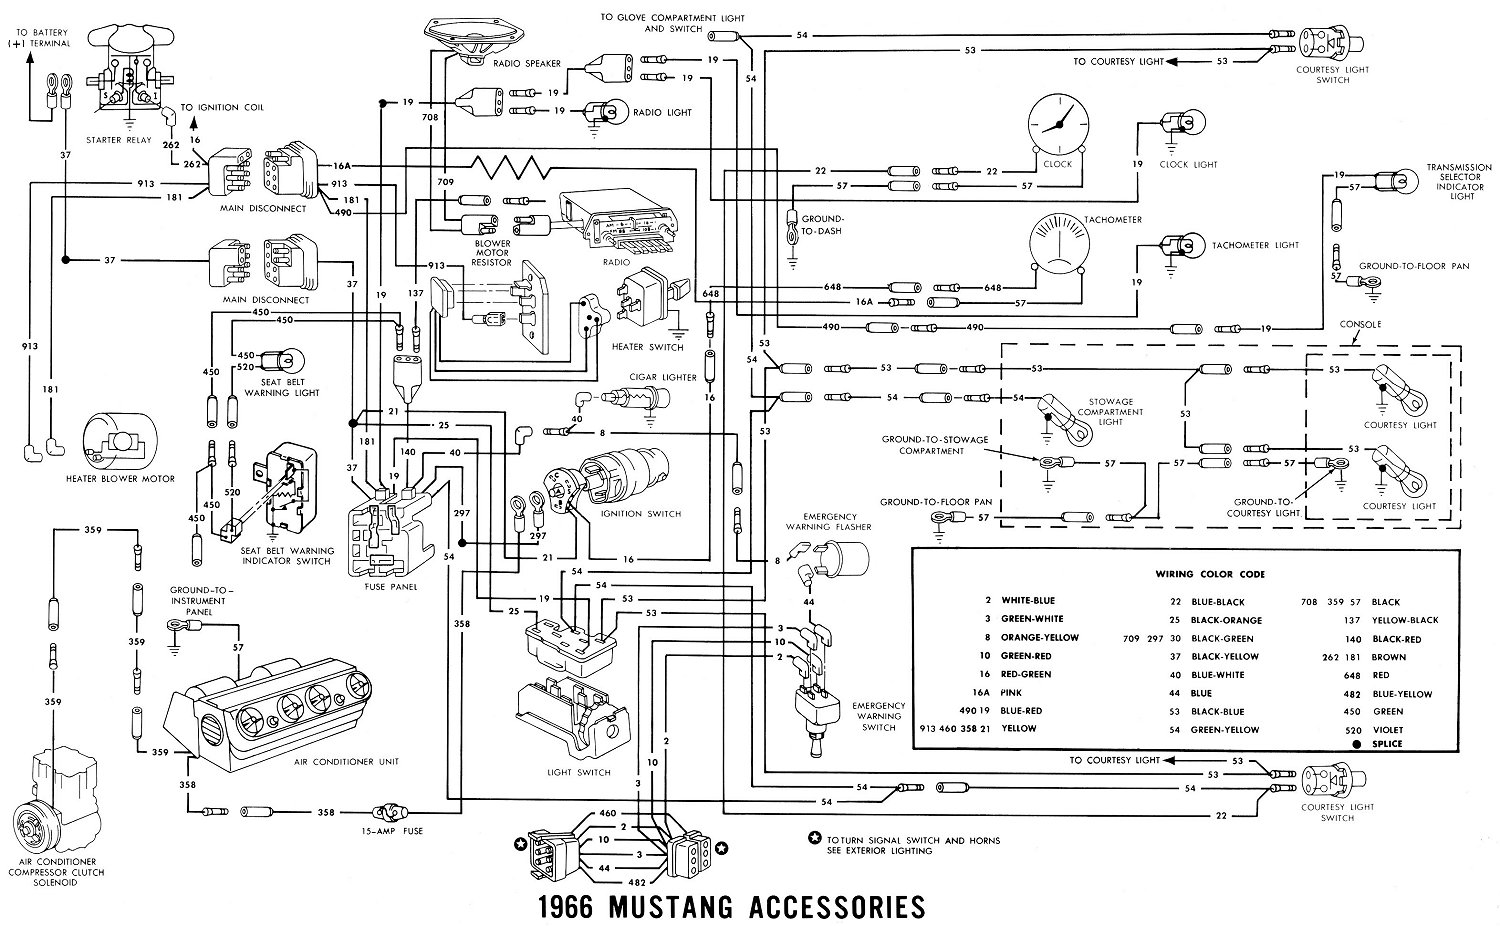 mustang instrument cluster wiring 1966 mustang accessories diagram